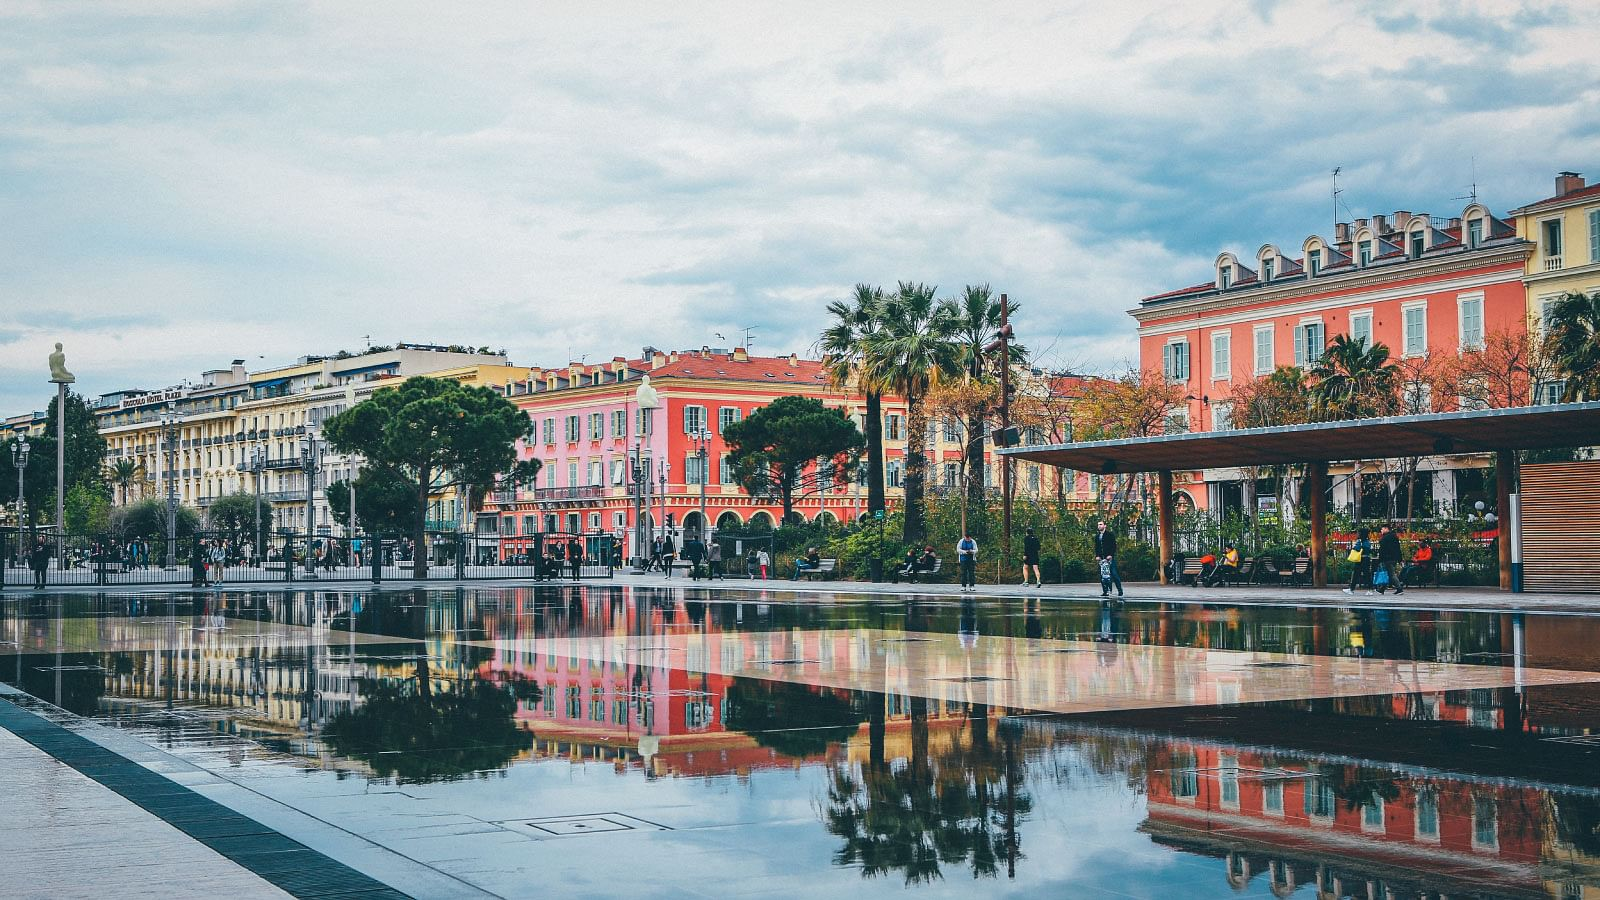 Nice City - Nice old town - Promenade Des Anglais - holiday in Nice - Nice tour guides - Hotel Negresco - Le Meridien